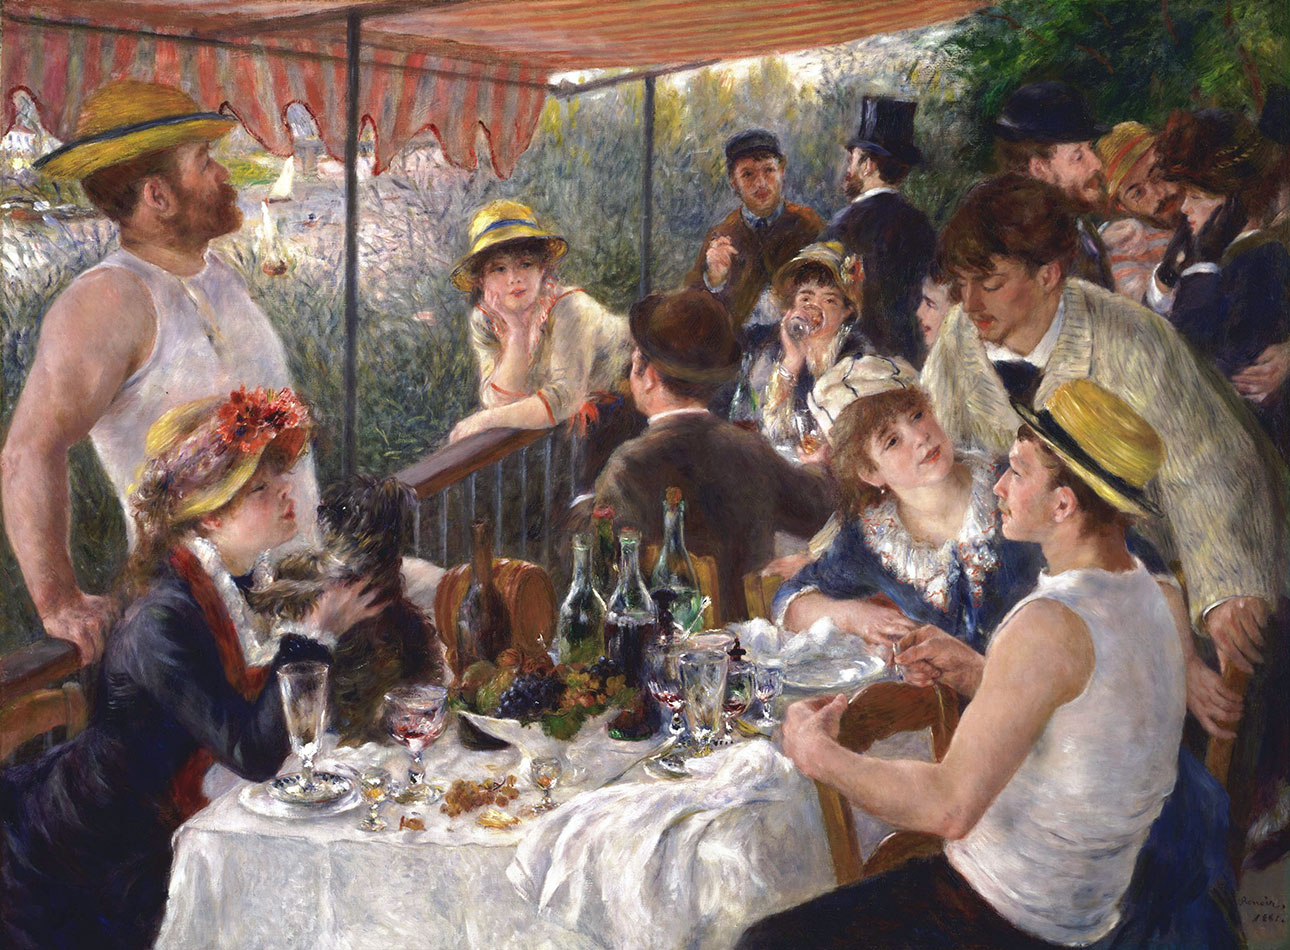 La colazione dei canottieri - Le déjeuner des canotiers - Luncheon of the Boating Party